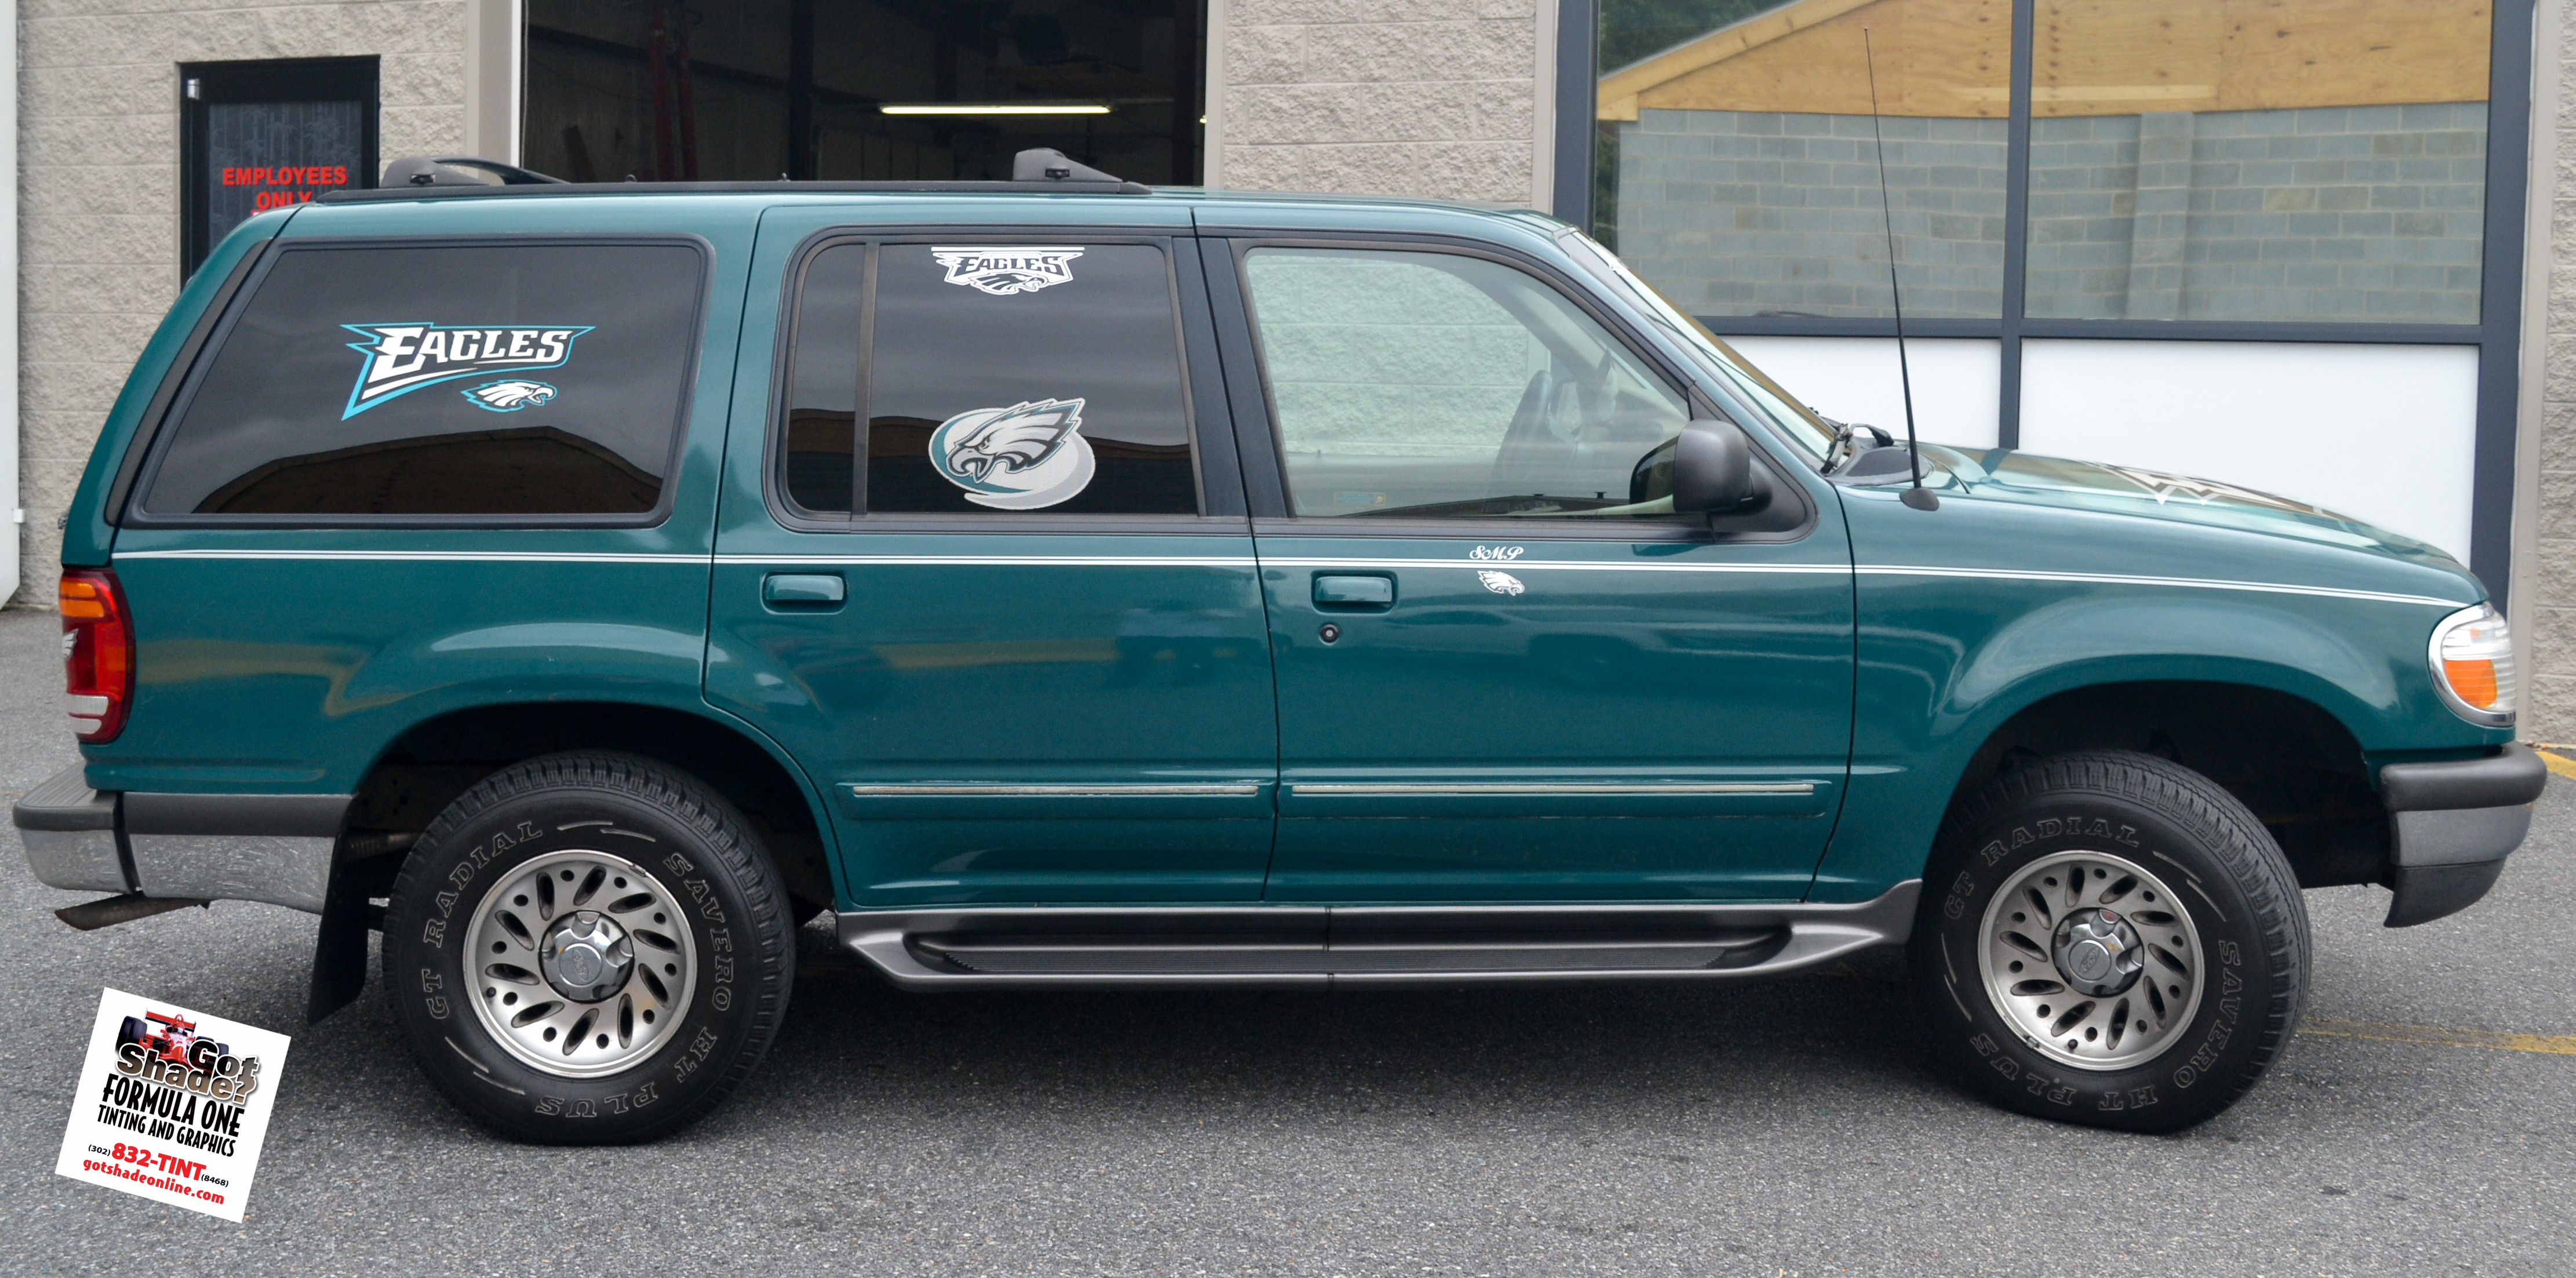 1998 ford explorer stripes and eagles decals 6